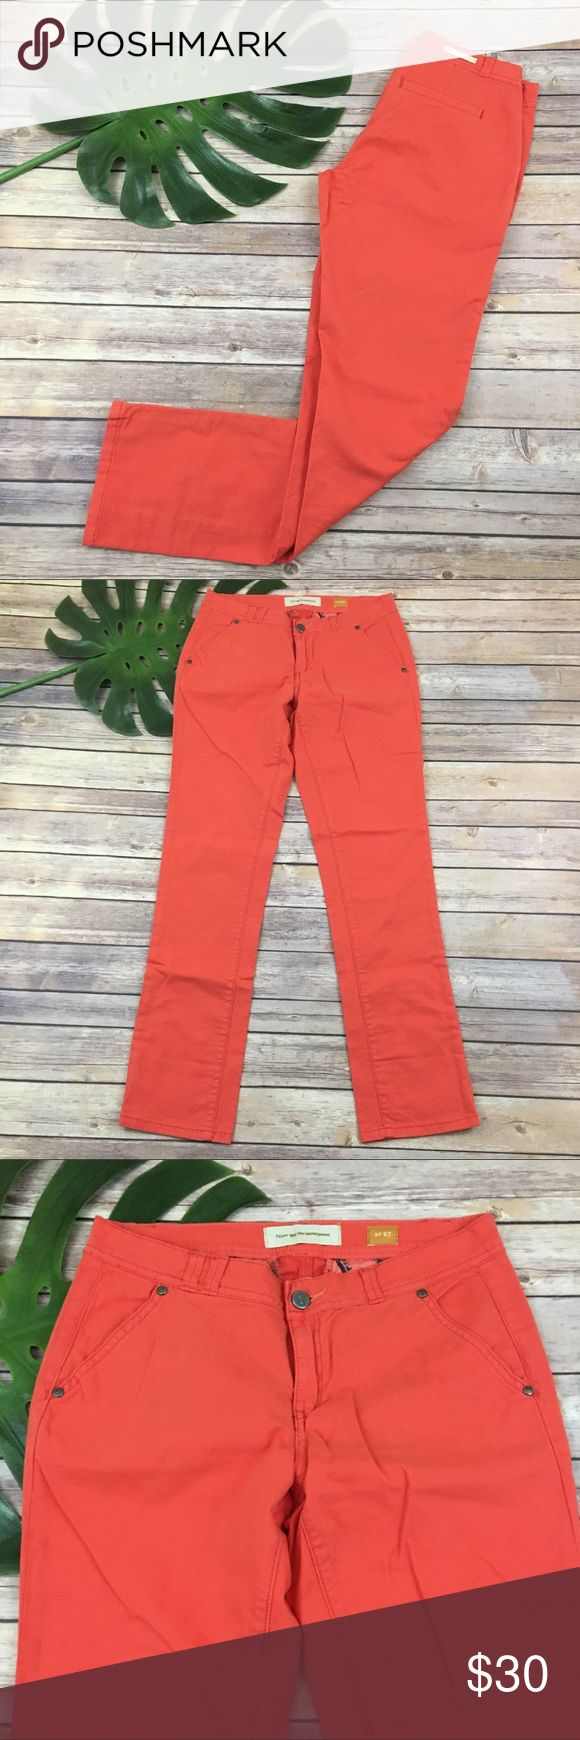 Pilcro coral orange straight leg pants Pilcro Anthropologie Orange skinny jeans, size 27. They are free from any rips or stains. They measure about 31 inches around the waist and the inseam is about 30 inches. The rise is about 8 inches. Anthropologie Pants Straight Leg